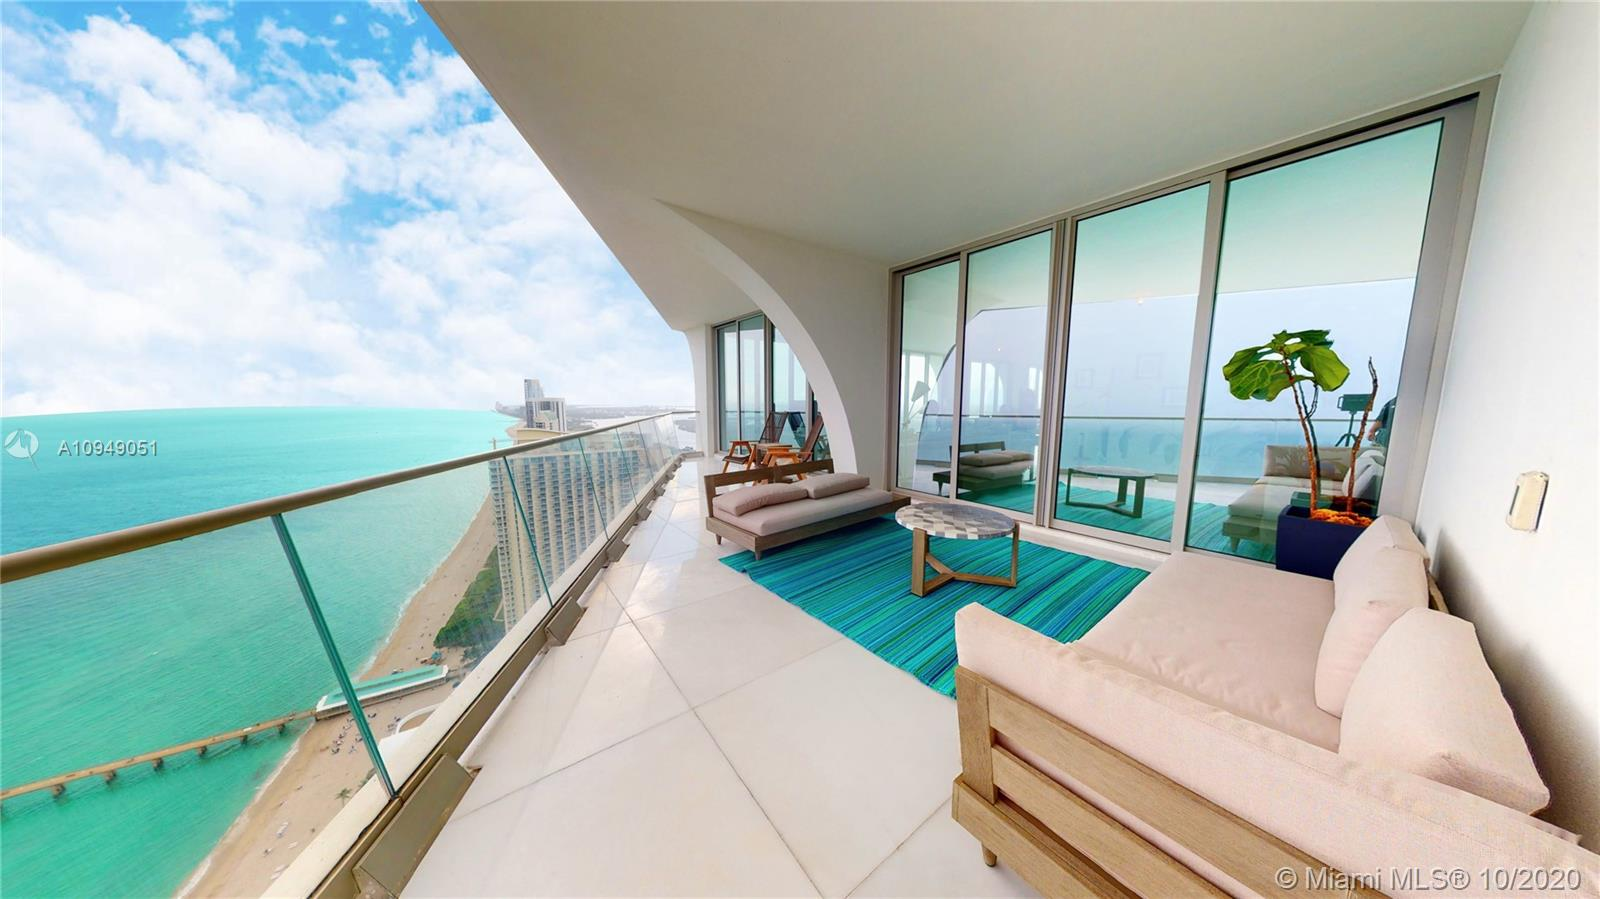 Spectacular corner residence in Award-Winning Miami Oceanfront Residences by Pritzker-Prize winning Herzog & de Meuron & the grand master of luxe, Pierre Yves Rochon.  This residence has 4 bedrooms 5 full bathrooms and 1 half bathroom with a family room and 5 terraces. Beautiful uninterrupted ocean and skyline views, floor-to-ceiling windows with immense natural sunlight shining through. Extraordinary resort-like experience with three floors dedicated to amenities that feature world-class on-sight dining, fully serviced spa, salon and outdoor water therapy terrace; fitness facilities with sunset yoga deck, Pilates/spin studios; teen tech lounge and toddler's sensory room. Virtual tour available